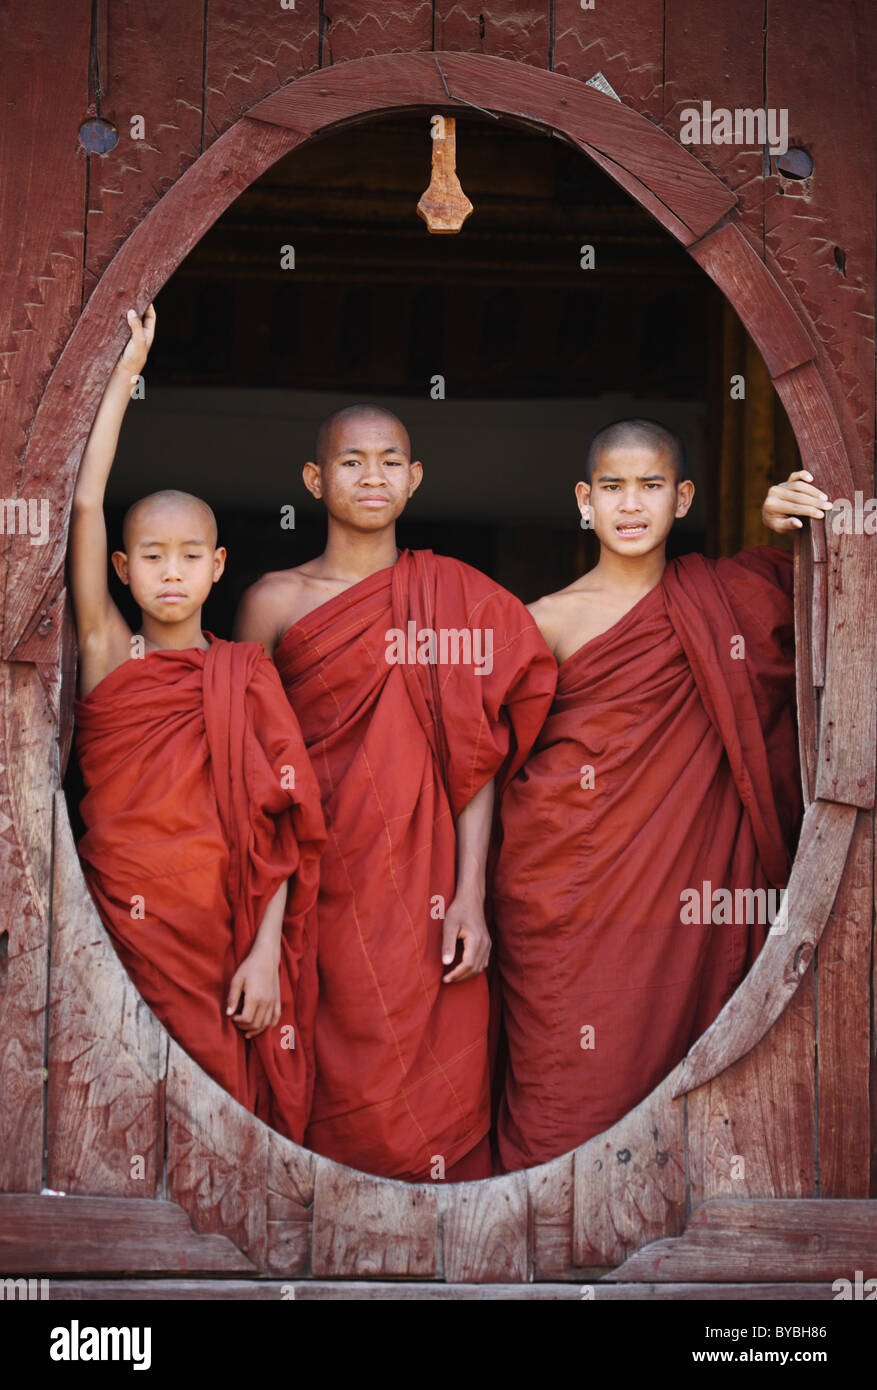 Burma,Birma,Myanmar, 20100223, novices in myanmar - Stock Image